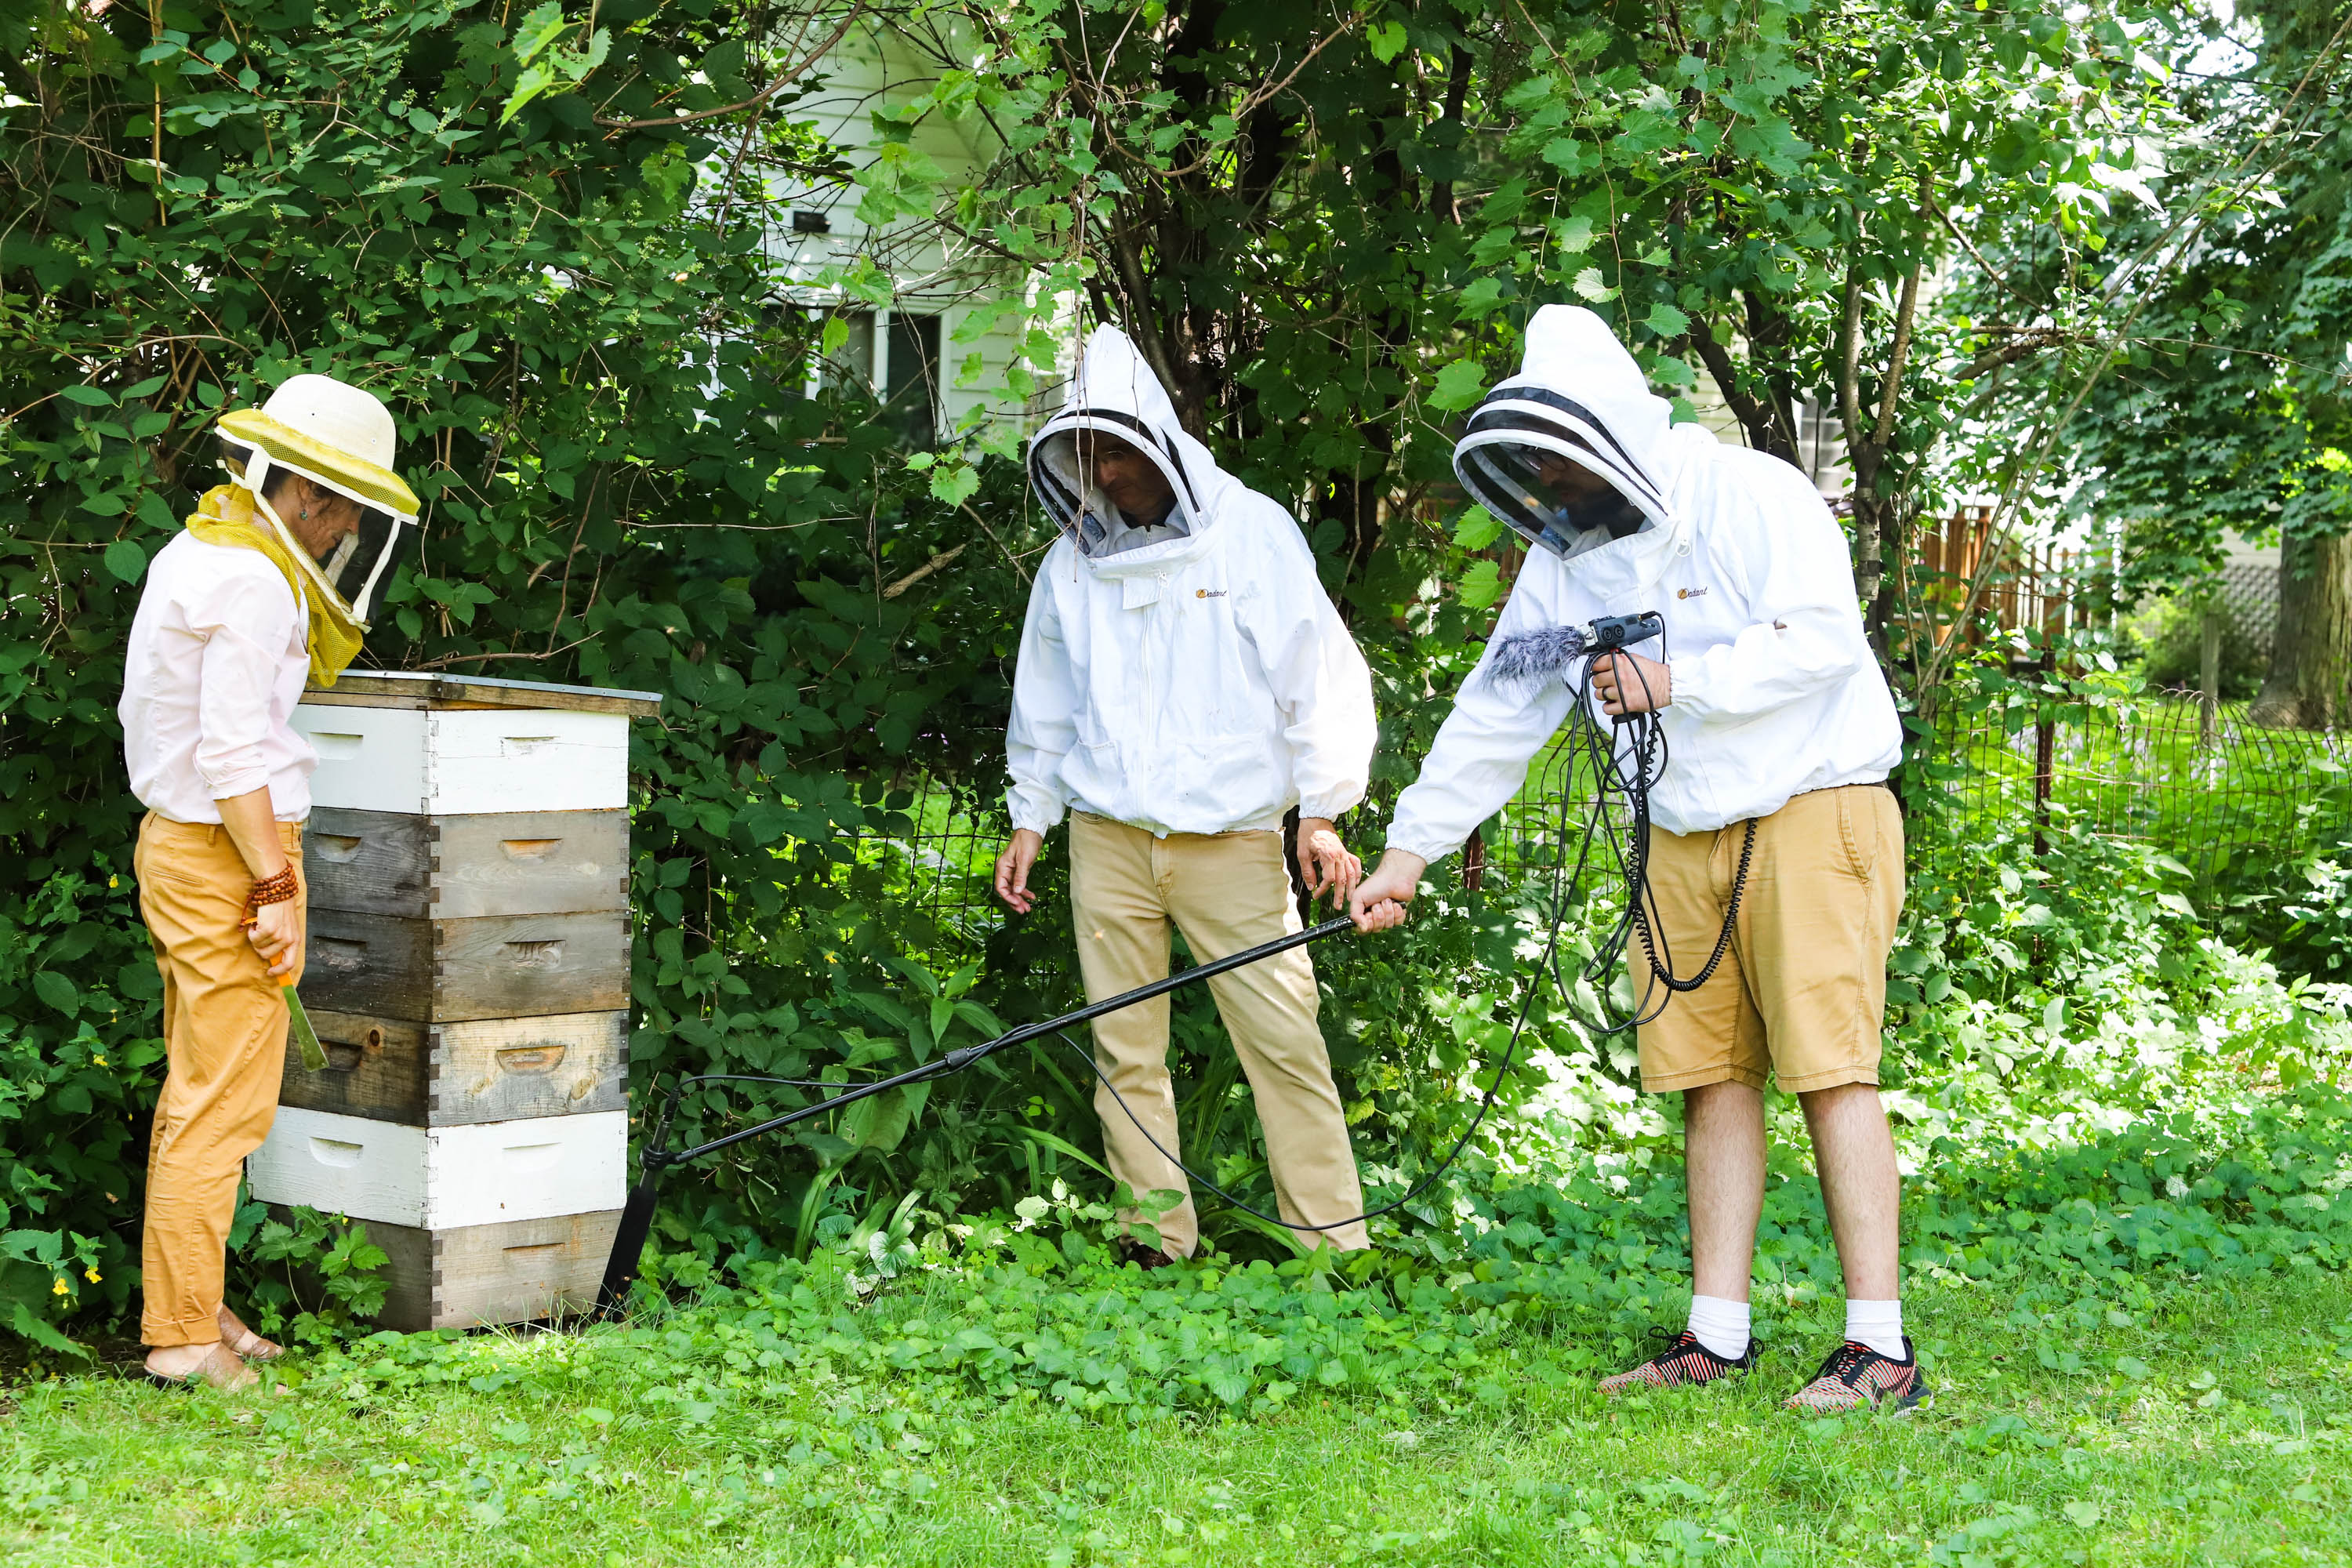 Steve learns about different bee sounds and hive activities while producer Mark Riechers gets in close to hear the bees come in and out.  <em>Shannon Henry Kleiber (TTBOOK)</em>